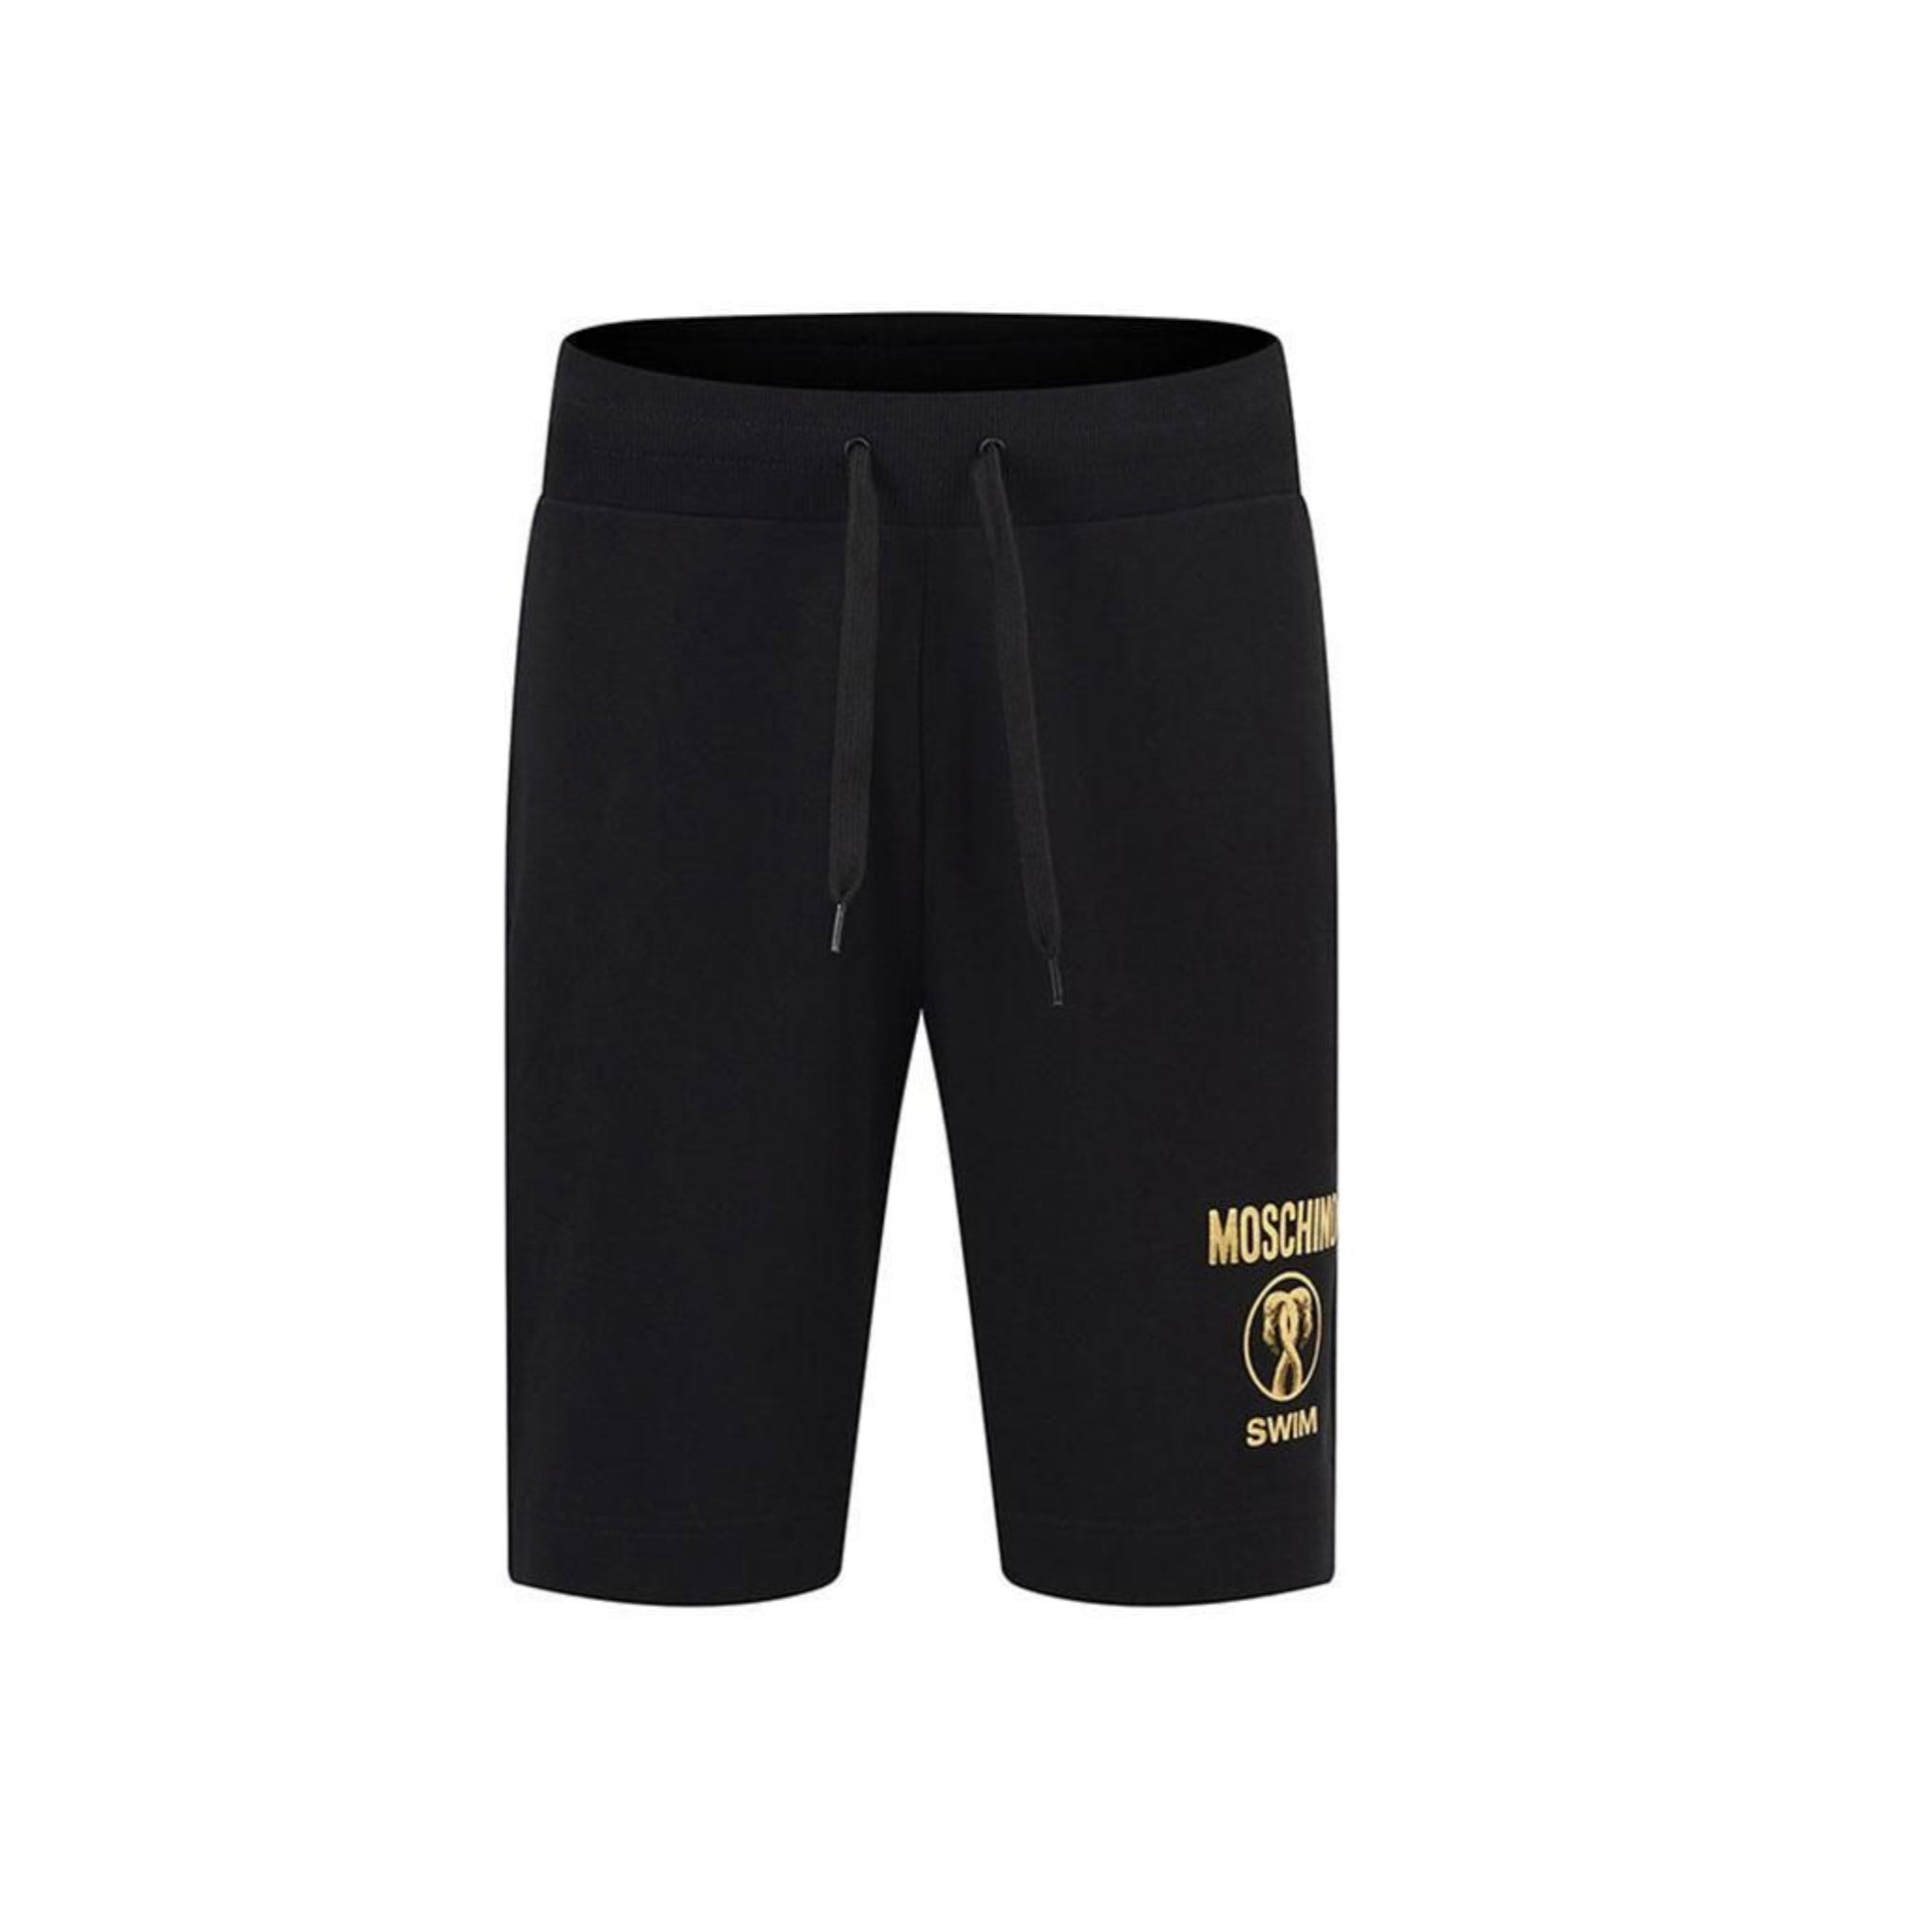 Moschino Swim Cotton Shorts